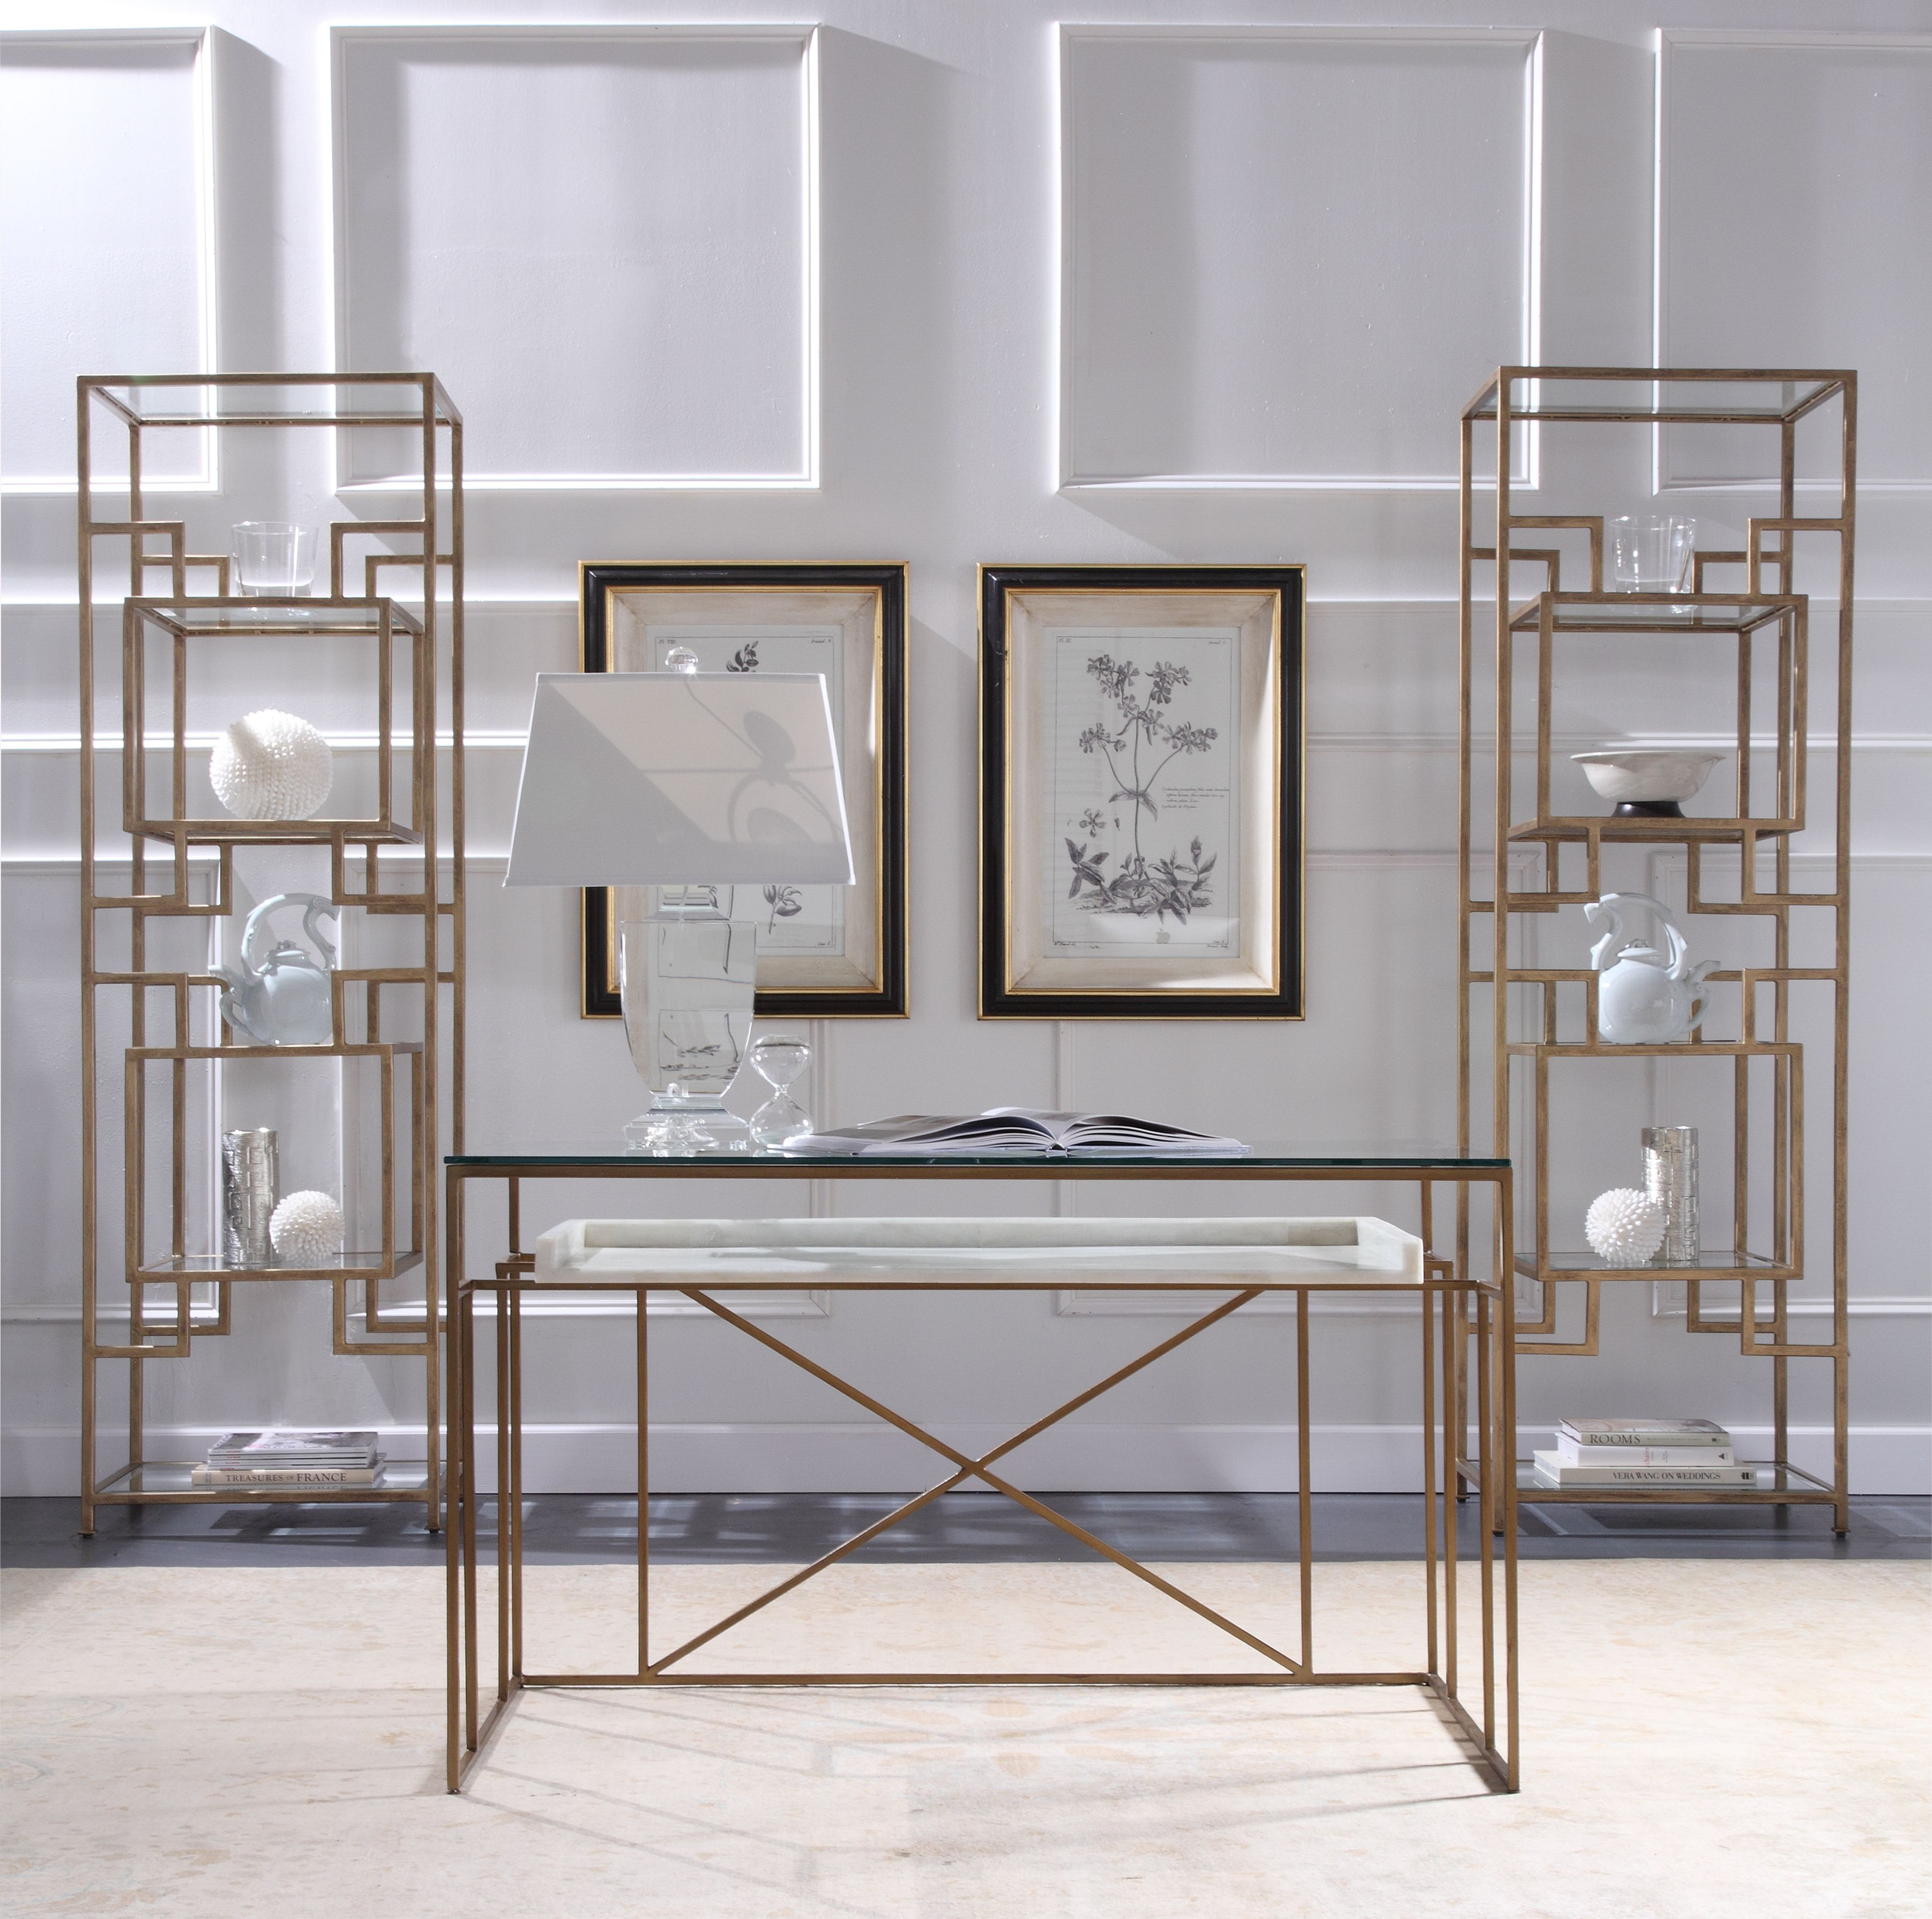 etageres etageres arthur court s antler tagres wisteria tagre etagere ikea cuisine meilleur. Black Bedroom Furniture Sets. Home Design Ideas